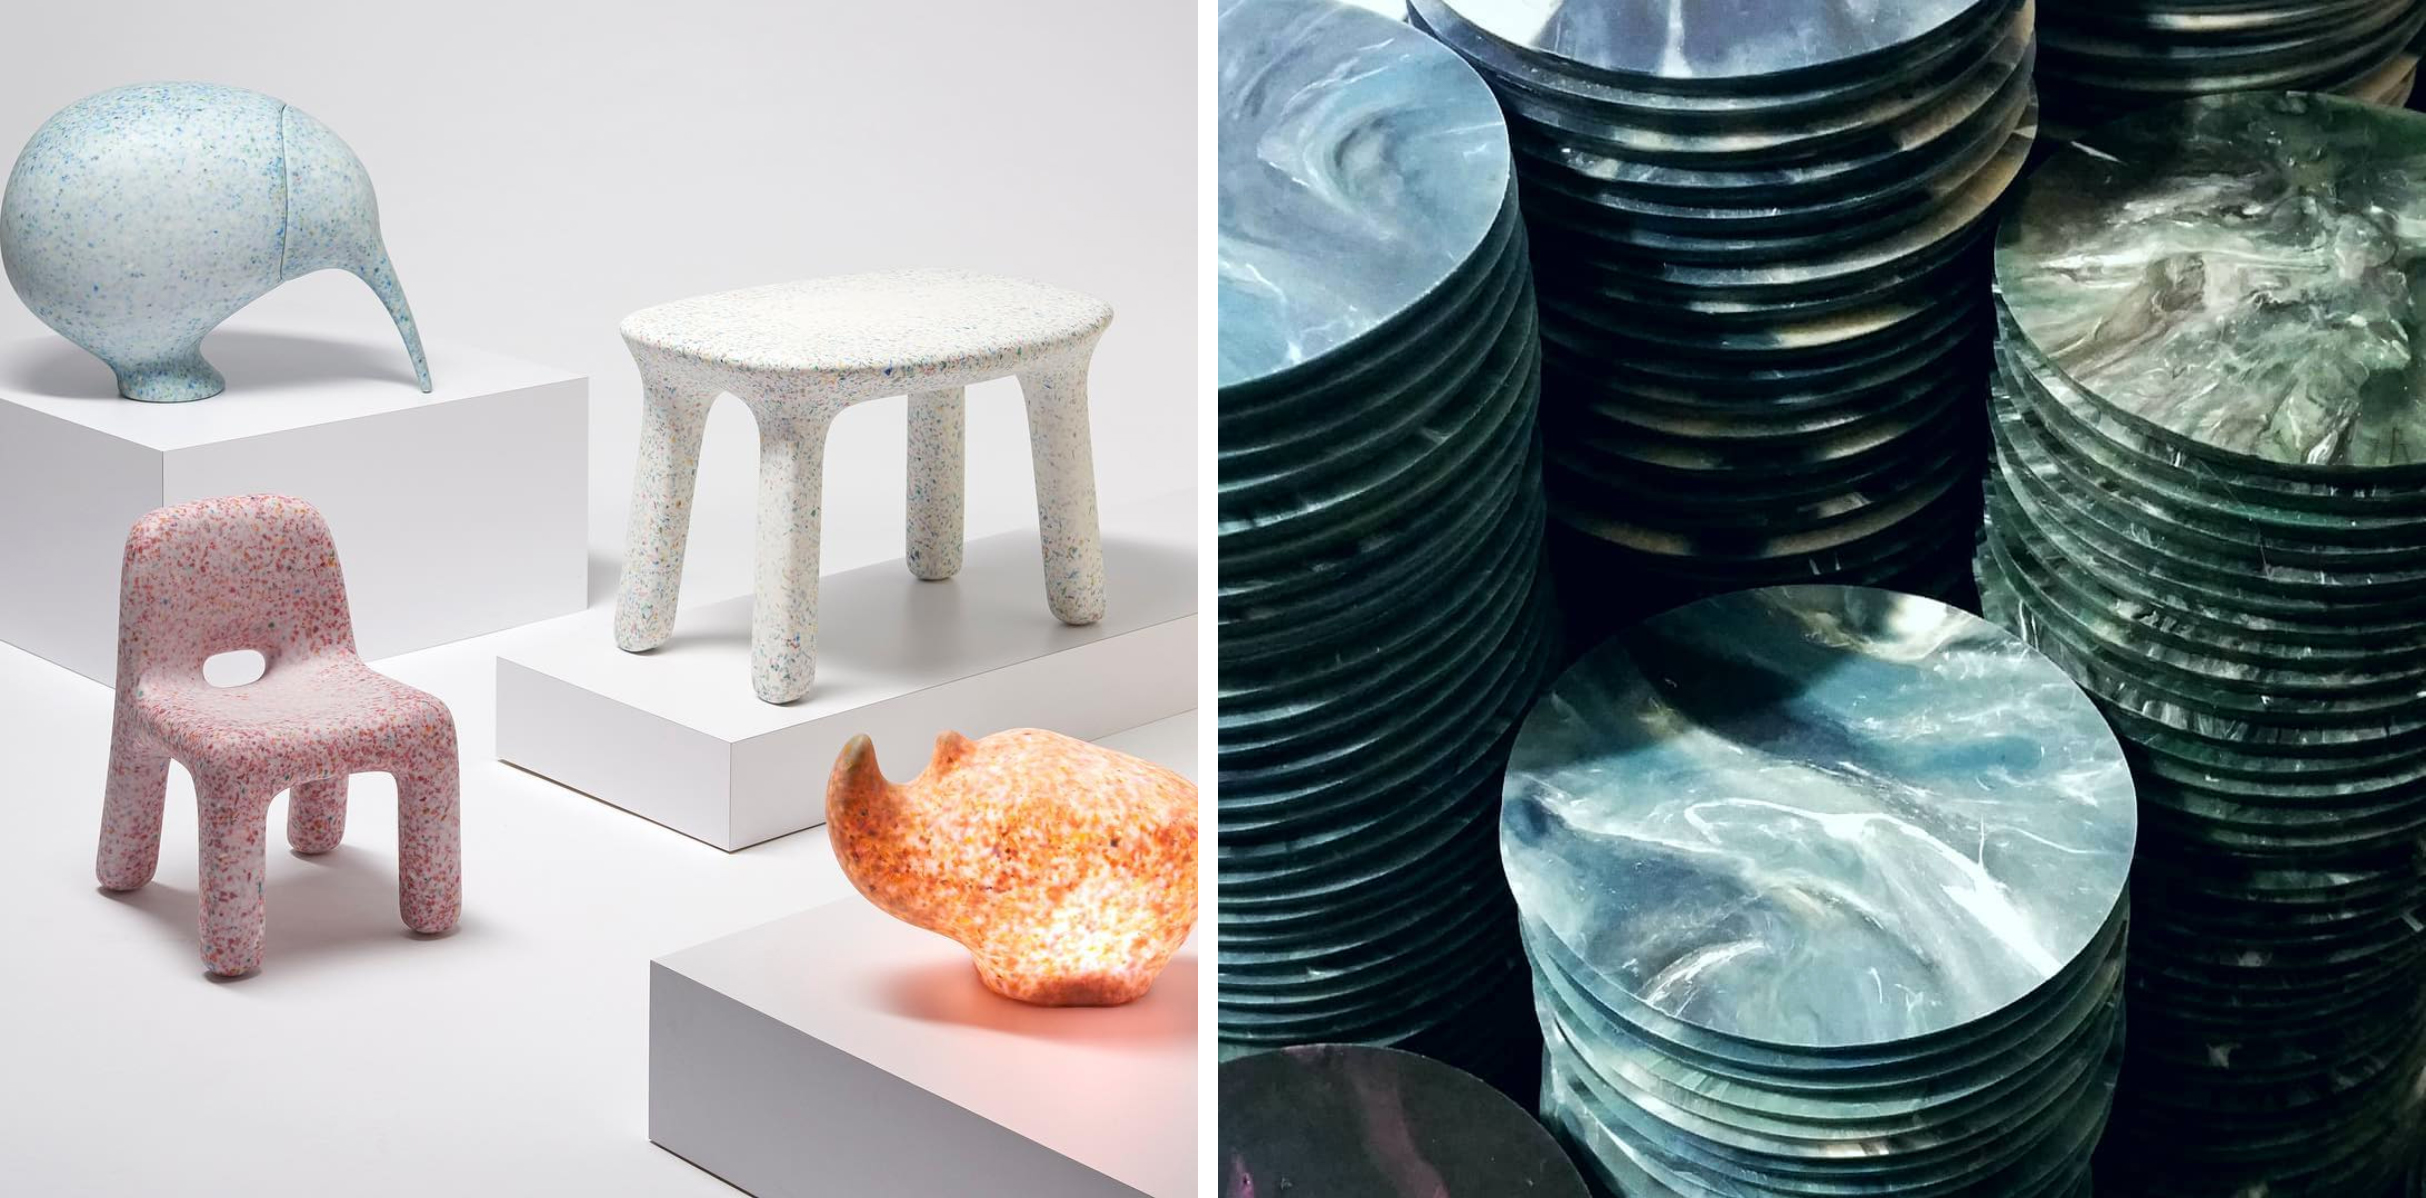 Two examples of plastic recycling projects. 1. Kids furniture made of recycled plastic toys. 2. Coasters made of recycled plastic wrap.